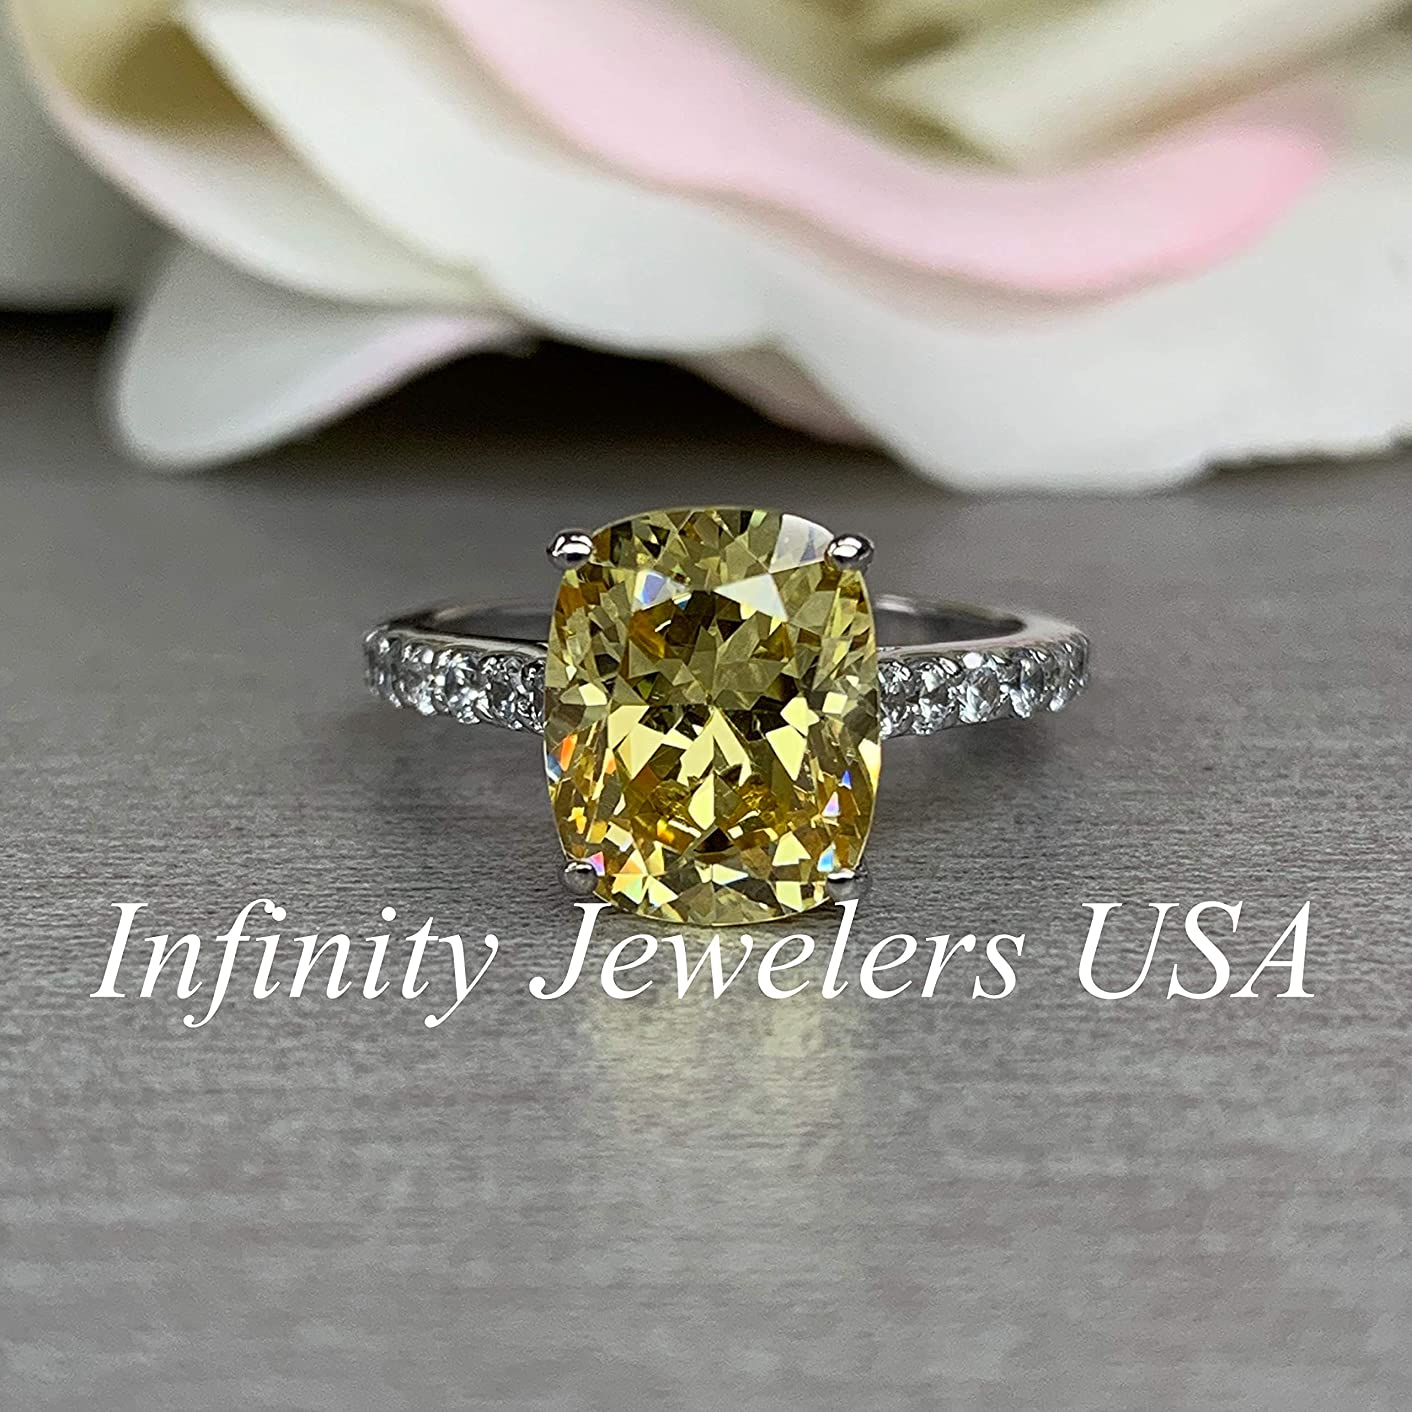 Canary Yellow Engagement Ring/Elongated Cushion Cut With Round Accents / 14k White Gold / #5578